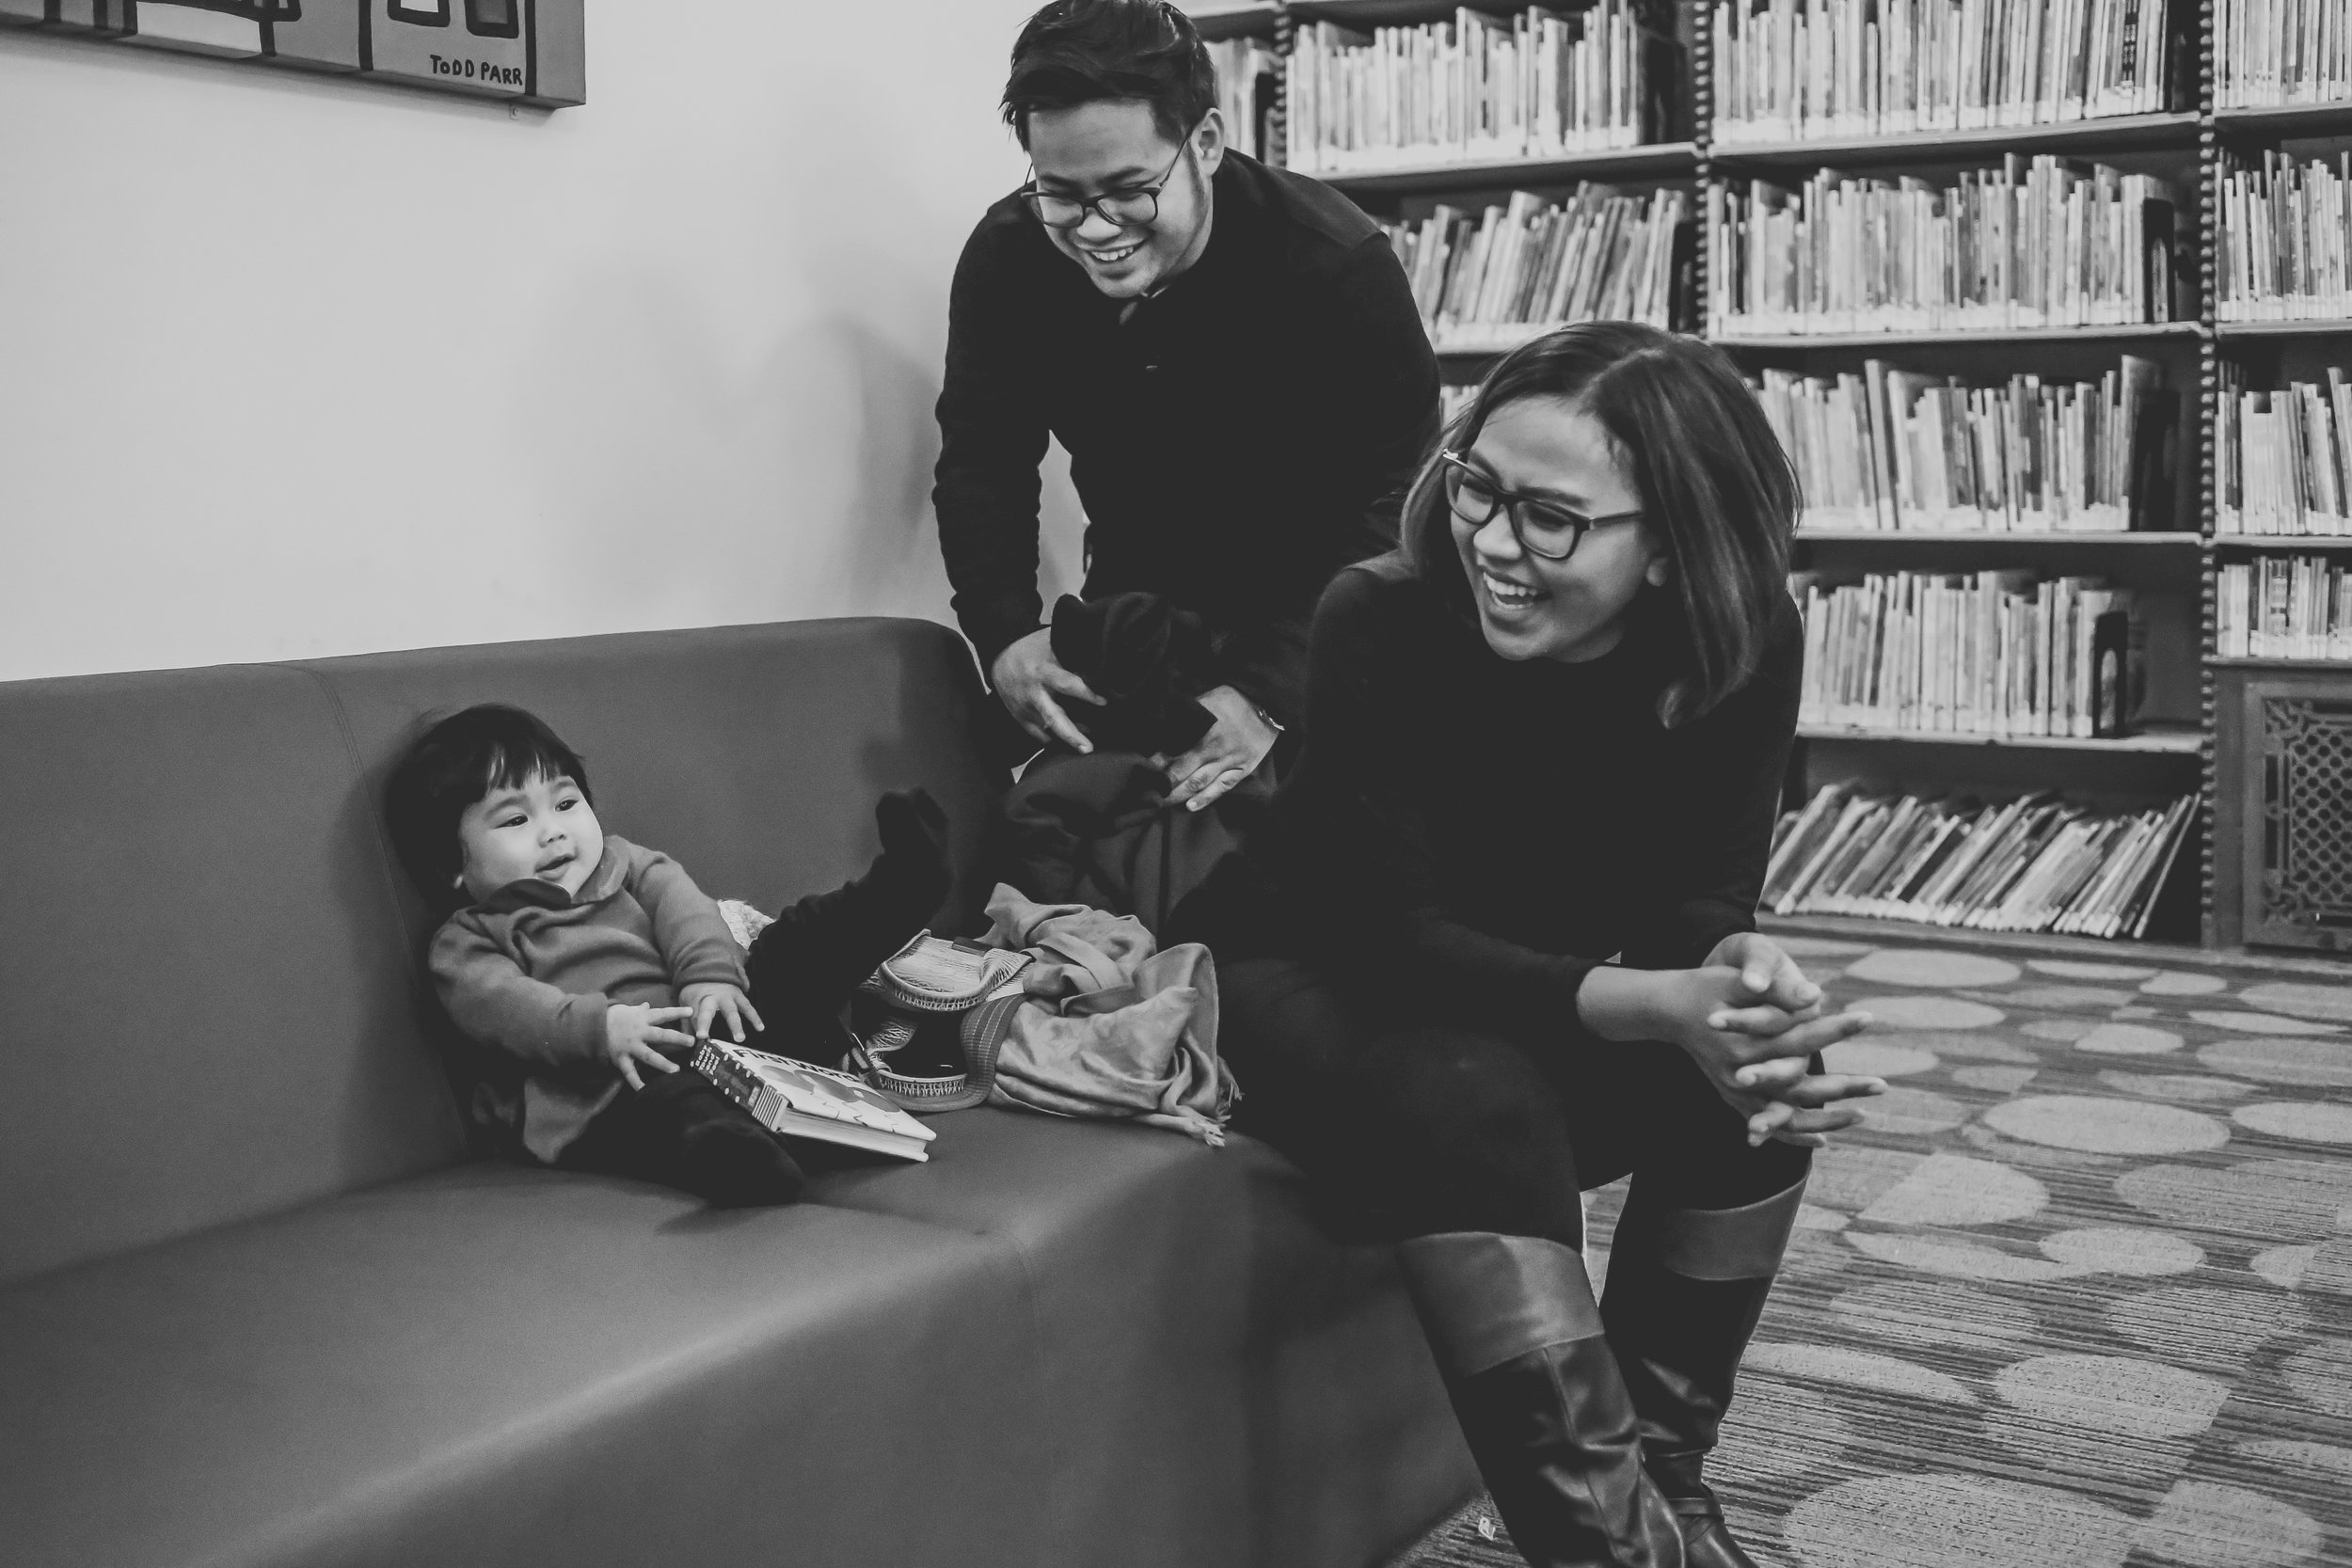 Having fun in the children's room at the Stephen Schwarzman building, NYPL at 42nd Street, New York City. Photo by Jen Grima, Lehigh Valley family photographer.